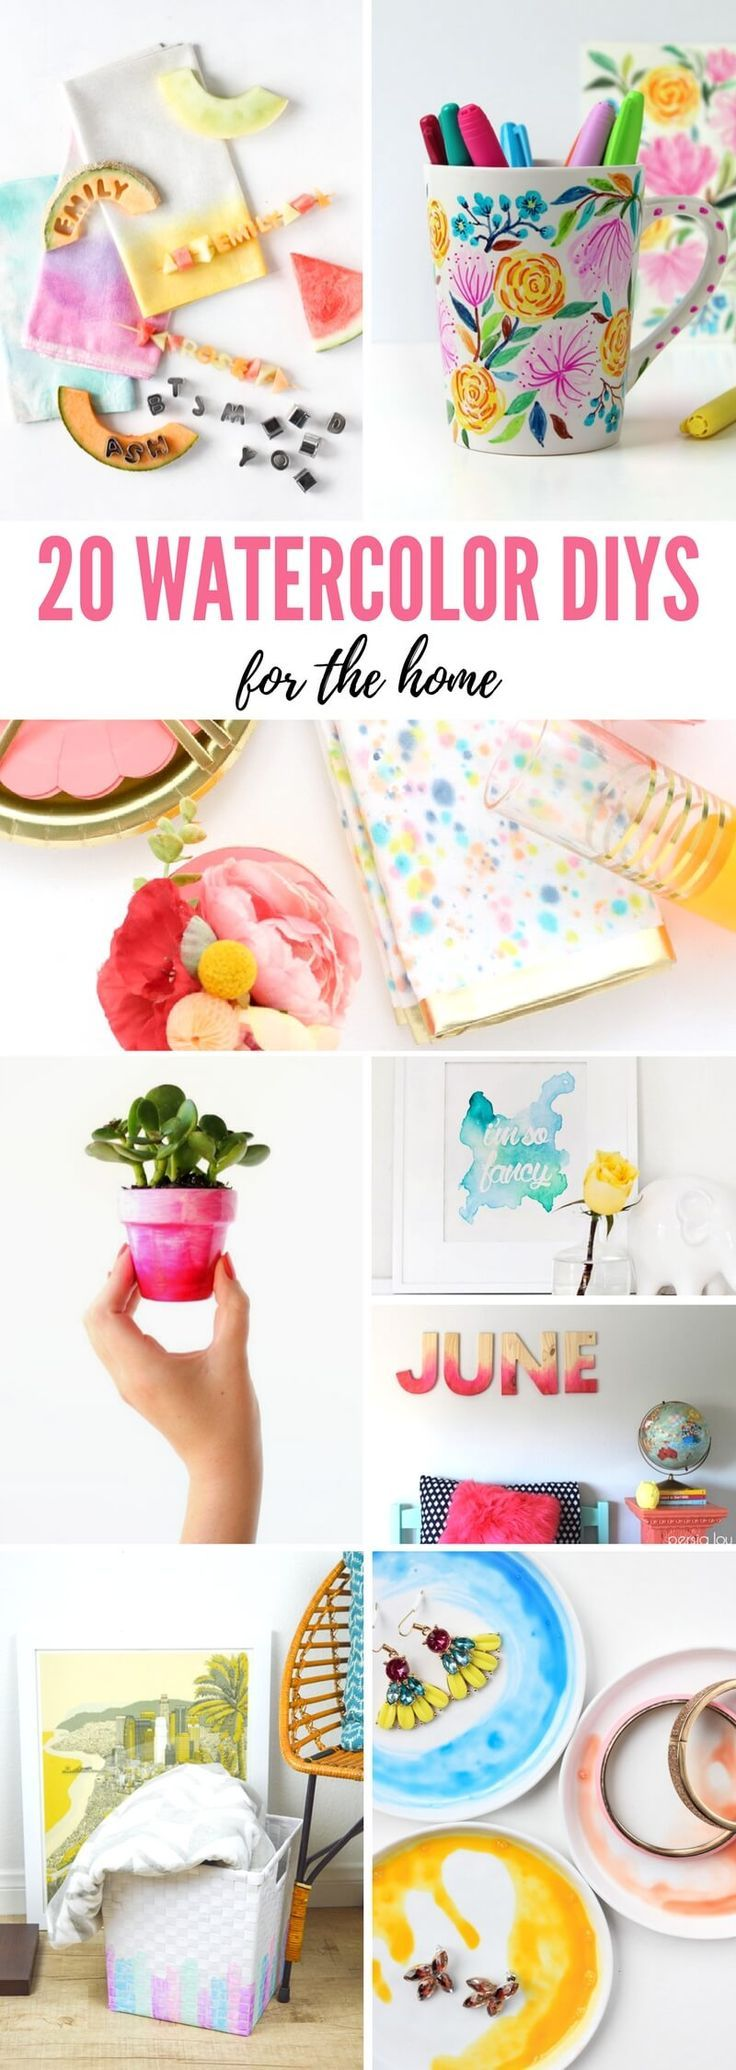 20 Vibrant Watercolor DIYs For Your Home #diy #diyproject